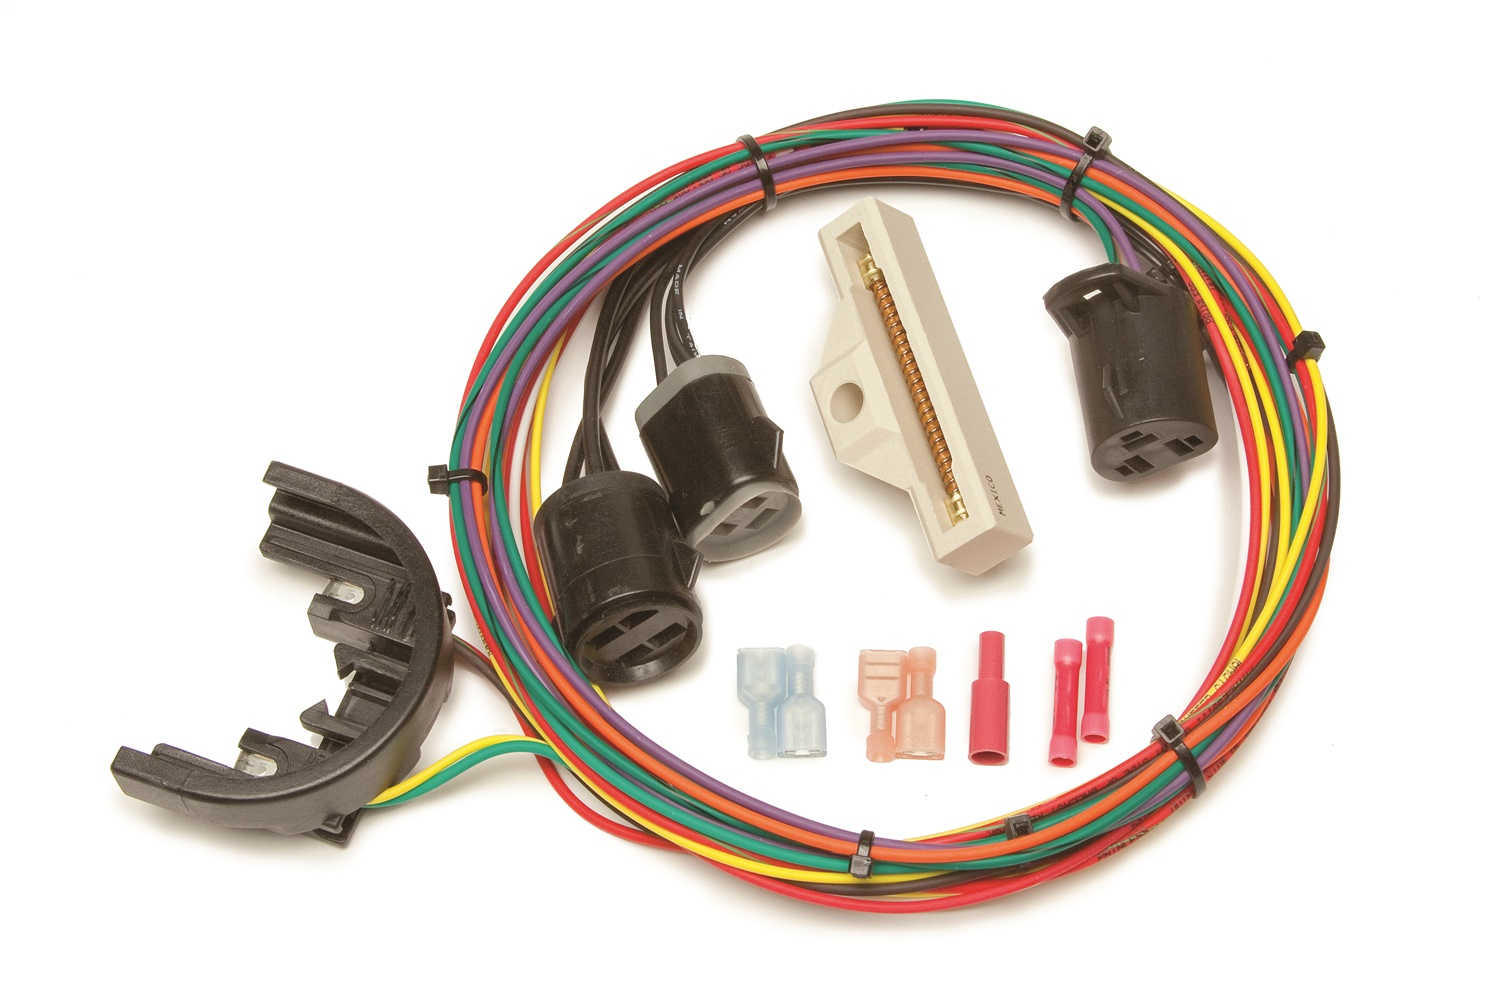 Painless 30819 Jeep DuraSpark II Ignition Harness